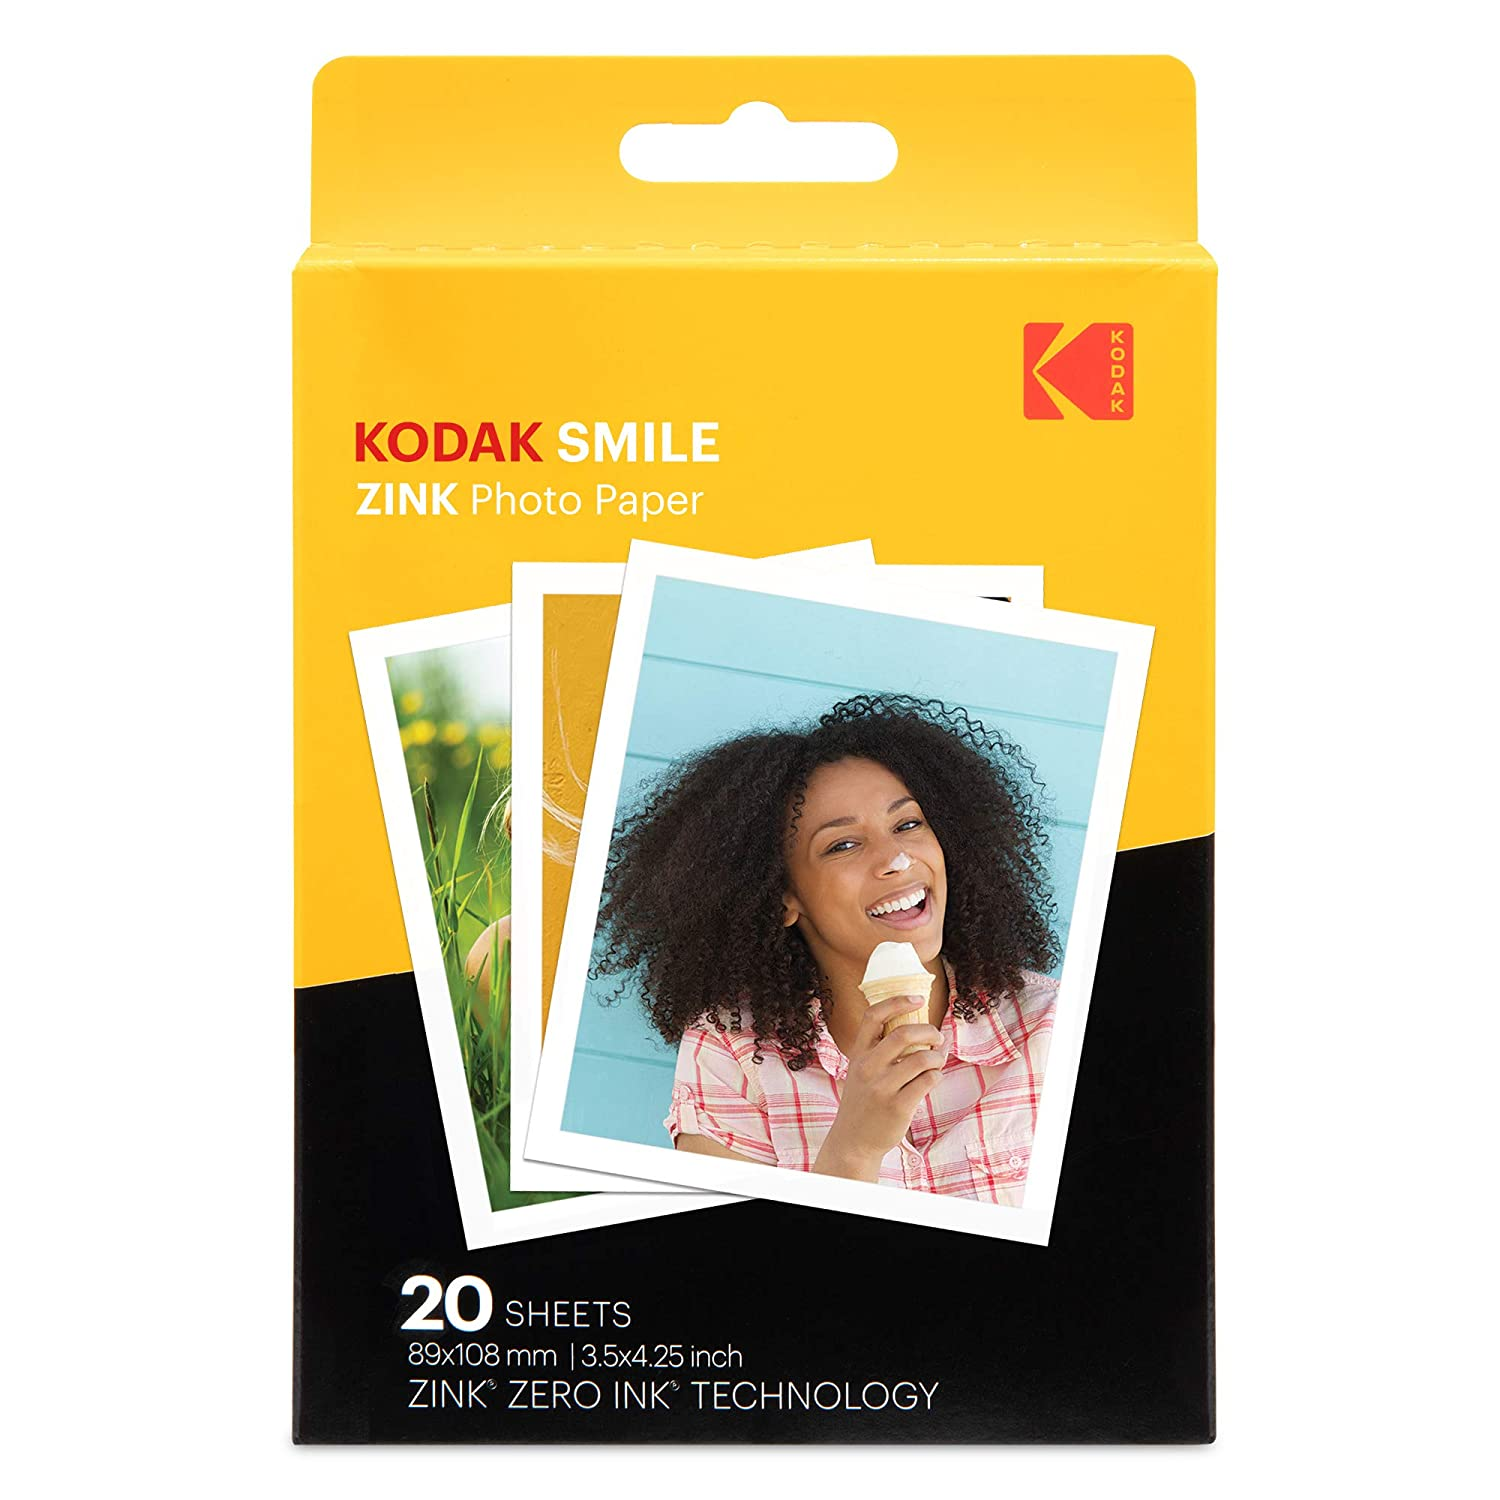 40 Sheets Compatible with Kodak Smile Classic Instant Camera Kodak 3.5x4.25 inch Premium Zink Print Photo Paper